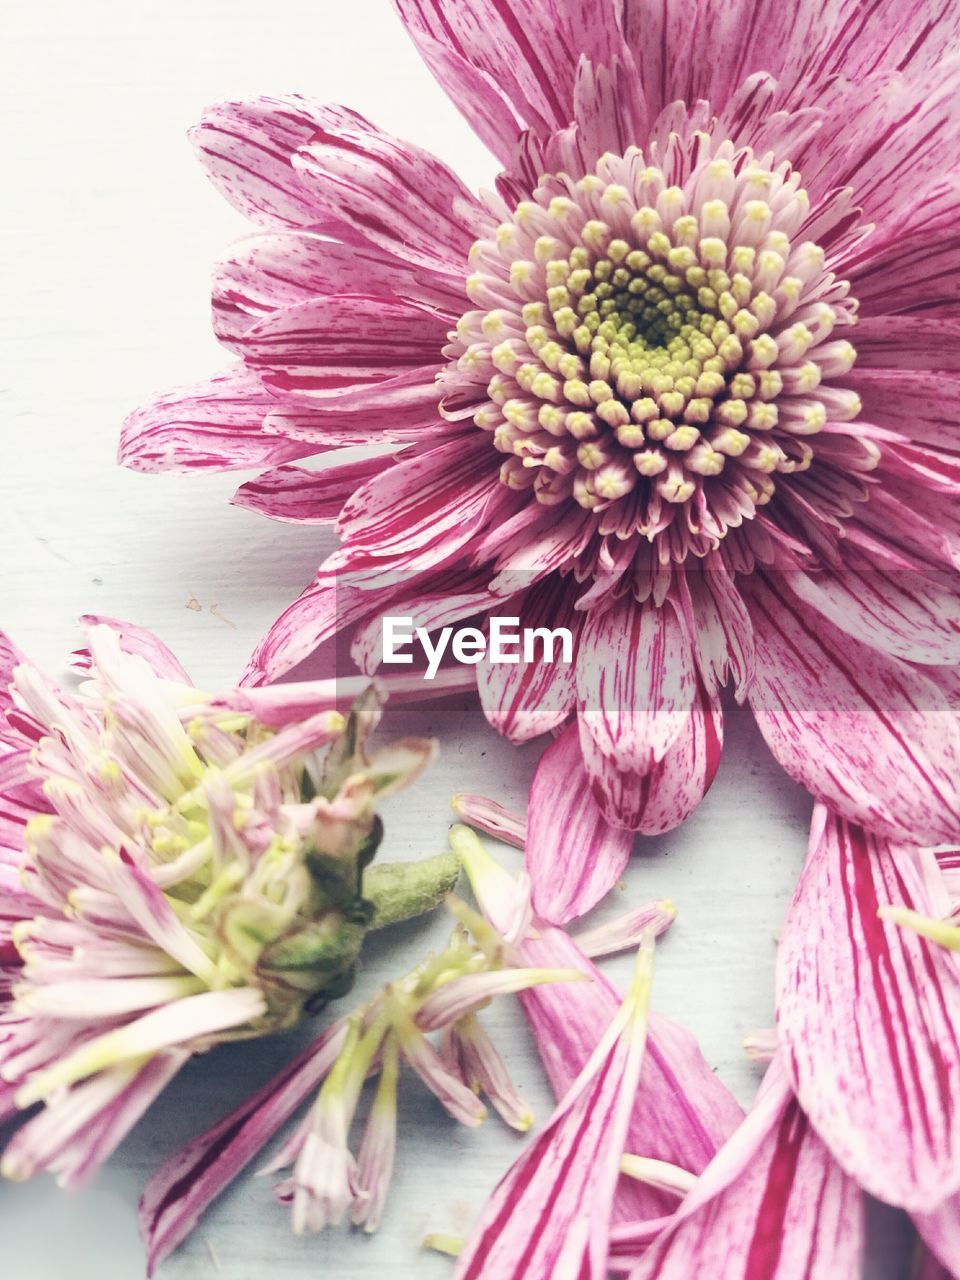 flower, petal, fragility, flower head, freshness, beauty in nature, close-up, nature, no people, pink color, growth, purple, day, plant, outdoors